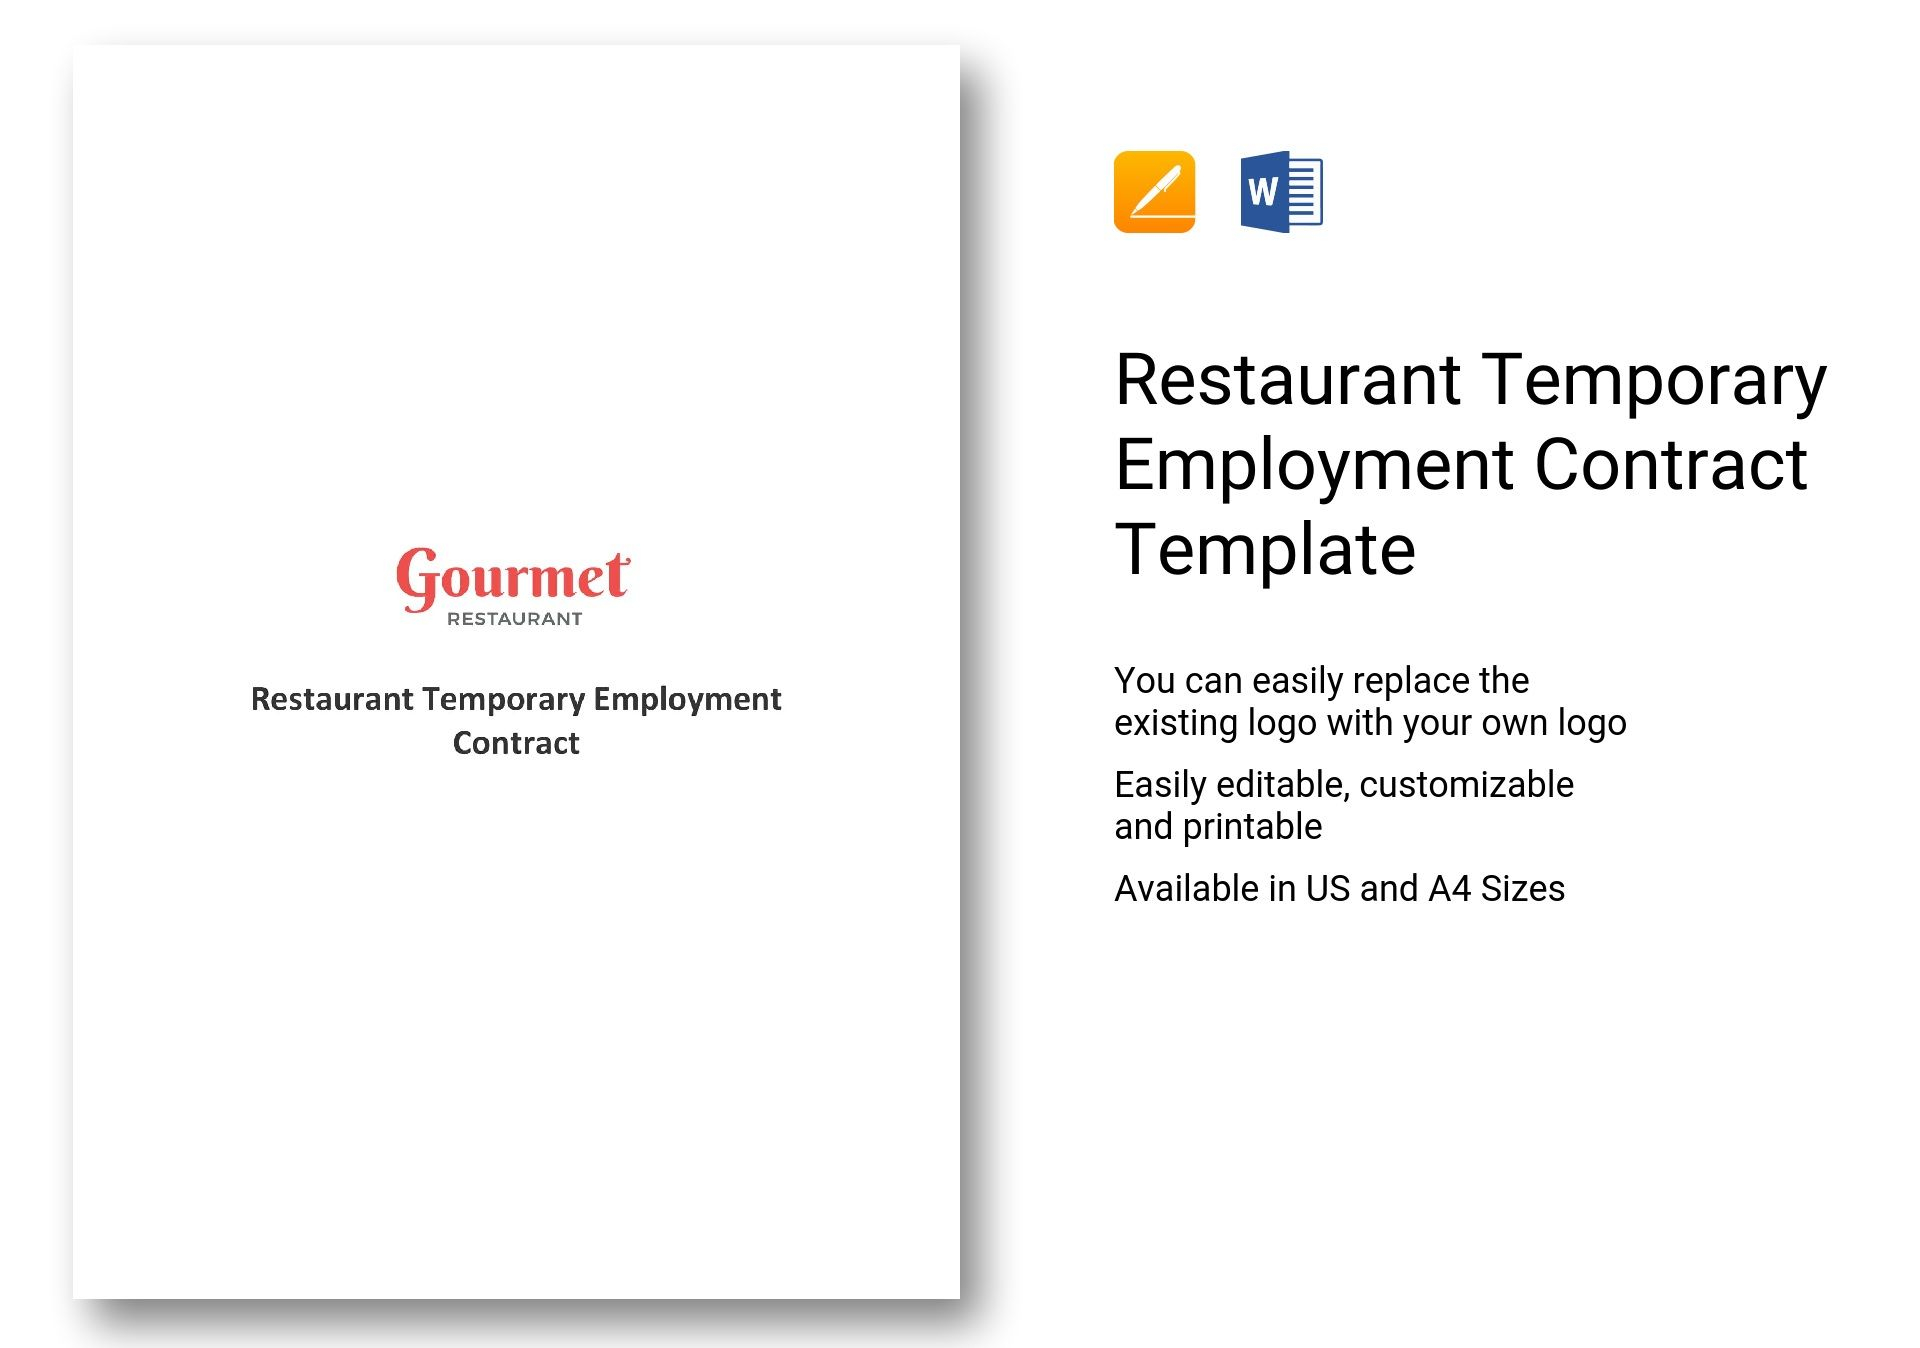 Restaurant Temporary Employment Contract Template in Word, Apple Pages